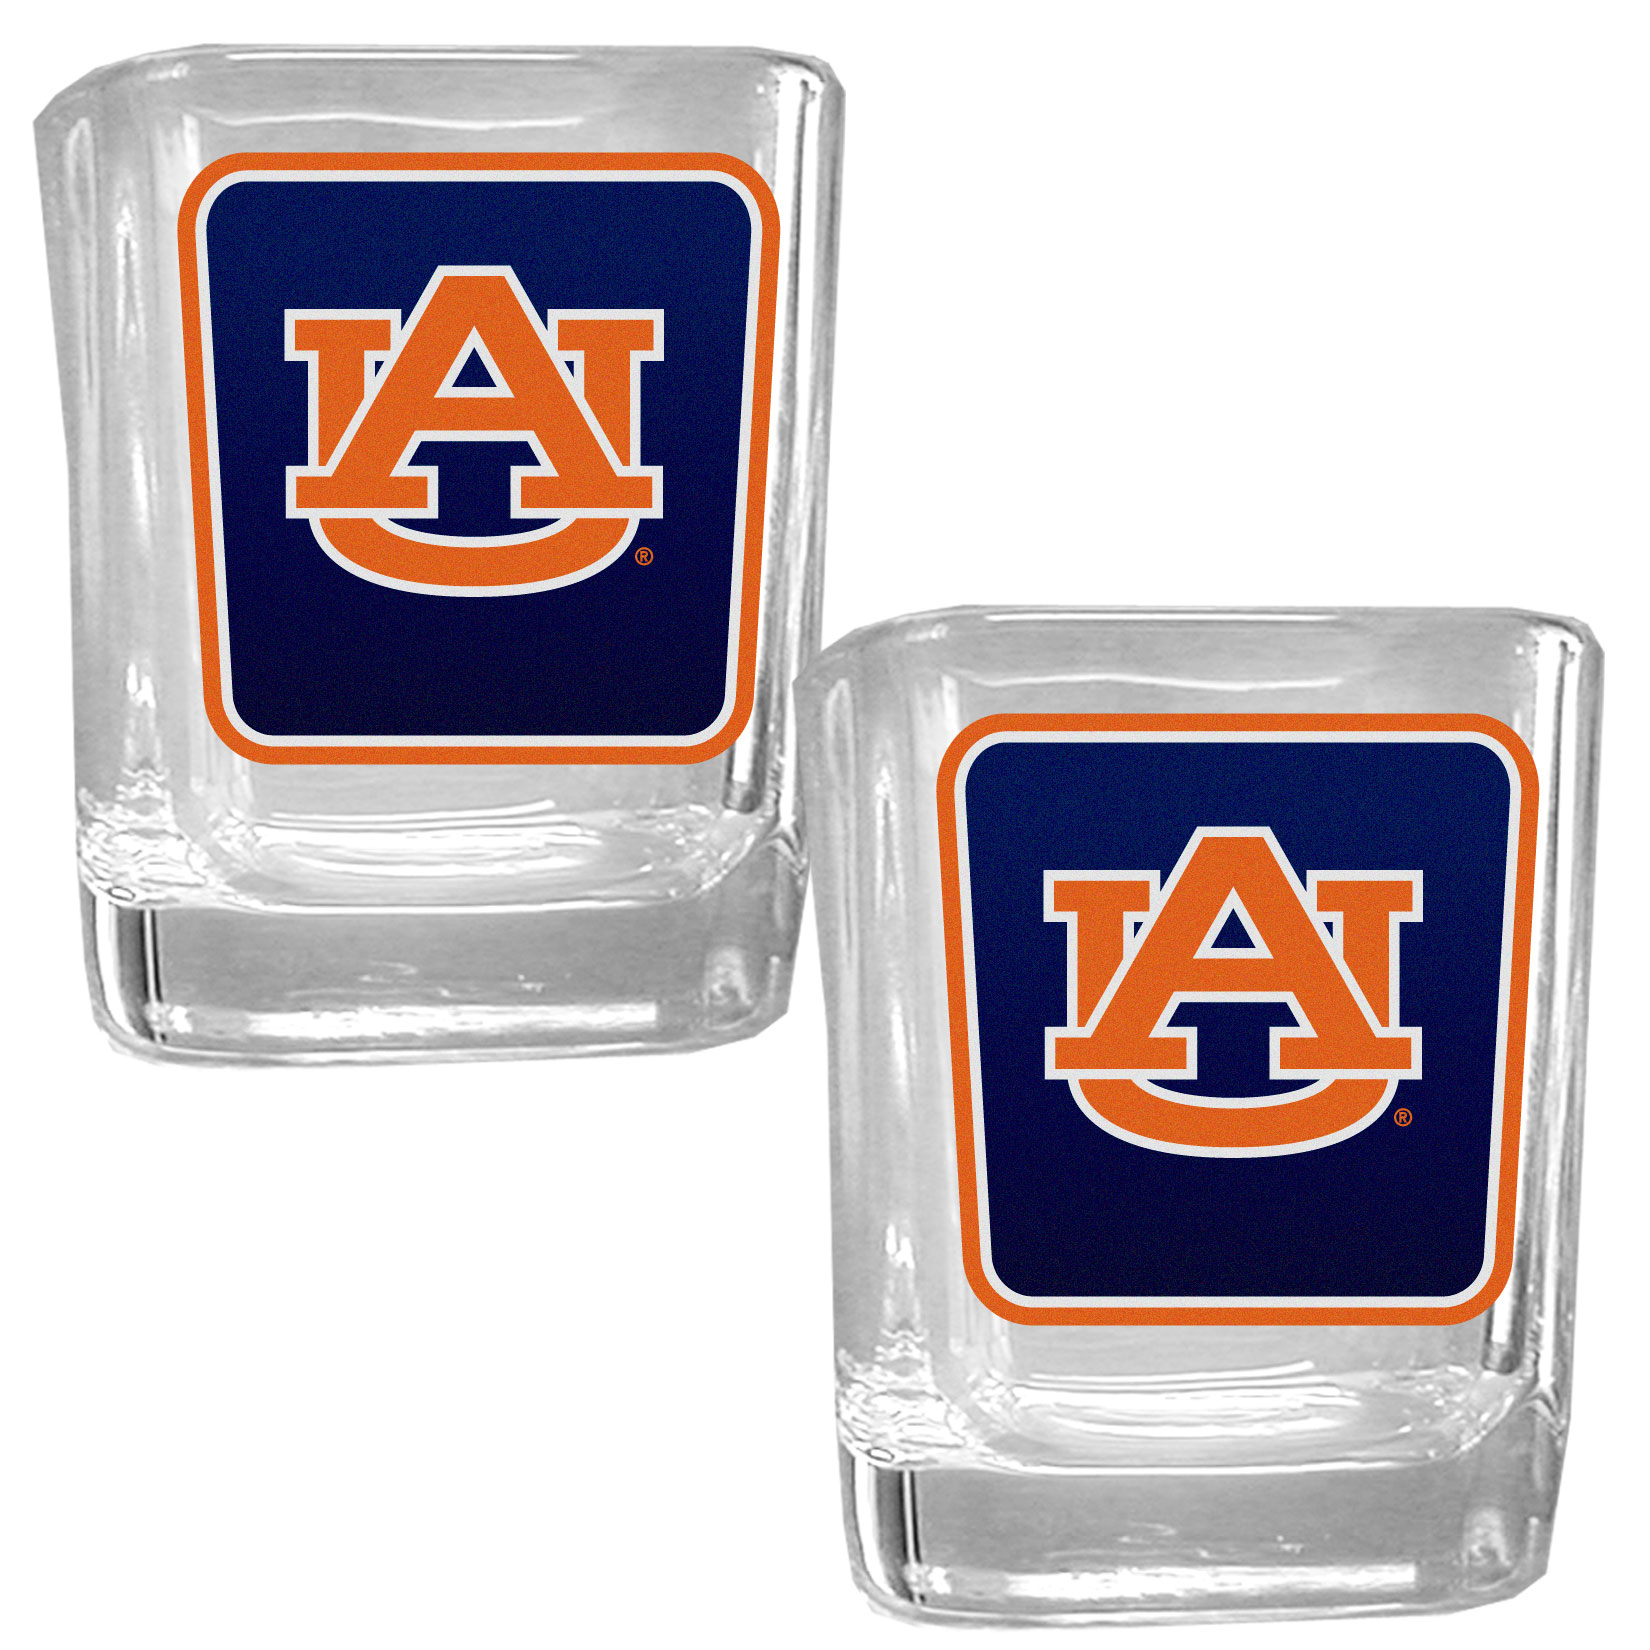 Auburn Tigers Square Glass Shot Glass Set - Our glass shot glasses are perfect for collectors or any game day event. The 2 ounce glasses feature bright, vidid digital Auburn Tigers graphics. Comes in a set of 2.